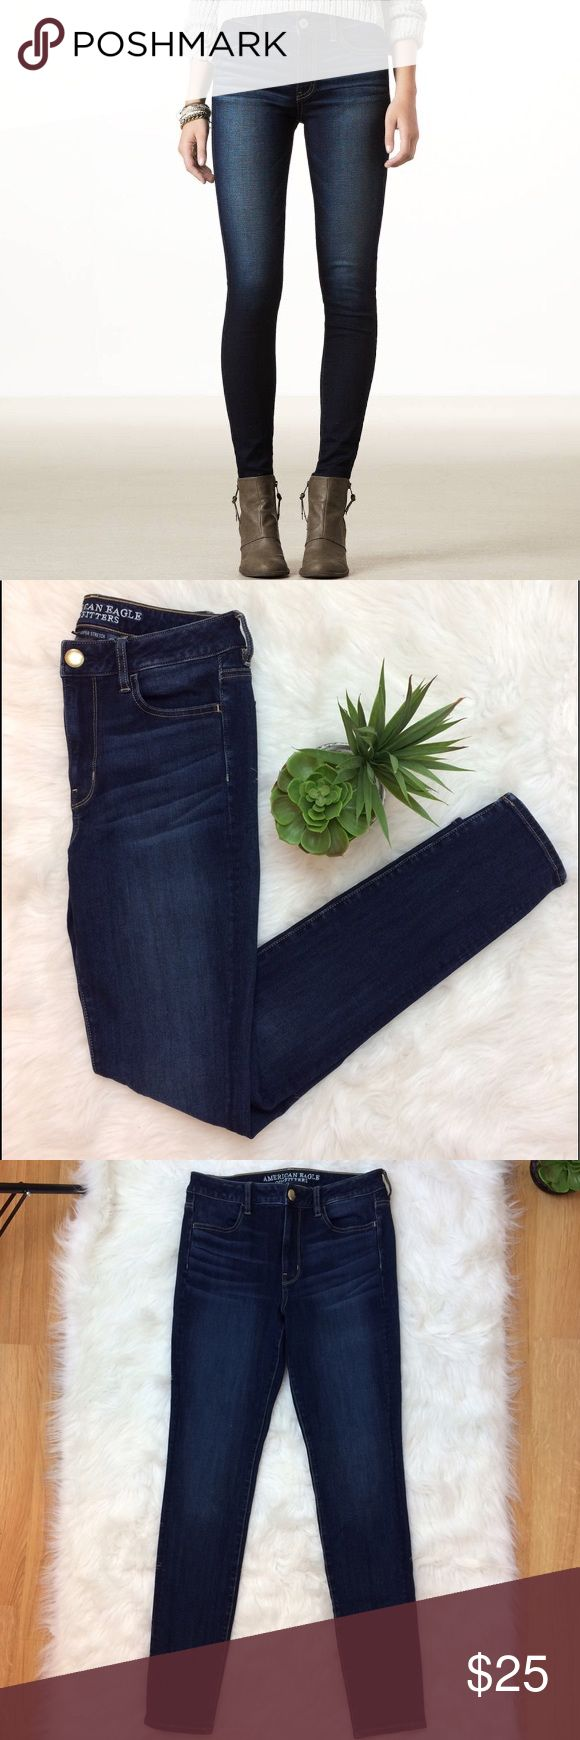 """American Eagle Hi-Rise Jegging American Eagle Hi- rise jegging. 360 super stretch. 71% cotton • 14% viscose • 11% polyester • 4% elastane. Size 8long. Waist is 14.5"""" across. 6.5"""" rise. 29 3/4"""" Inseam. American Eagle Outfitters Jeans Skinny"""